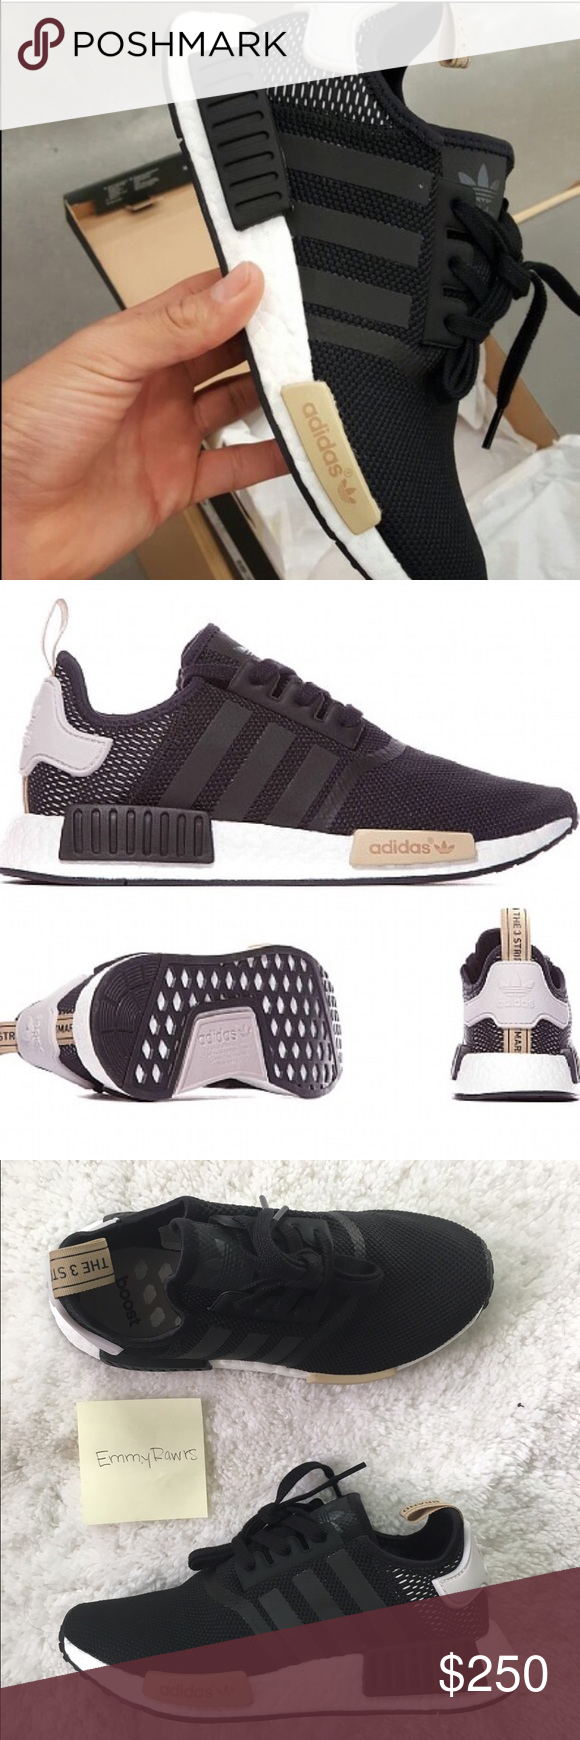 d81cedb9c8fce New Adidas NMD R1 Black  Ice Purple ••  200 on either Vinted or P ...